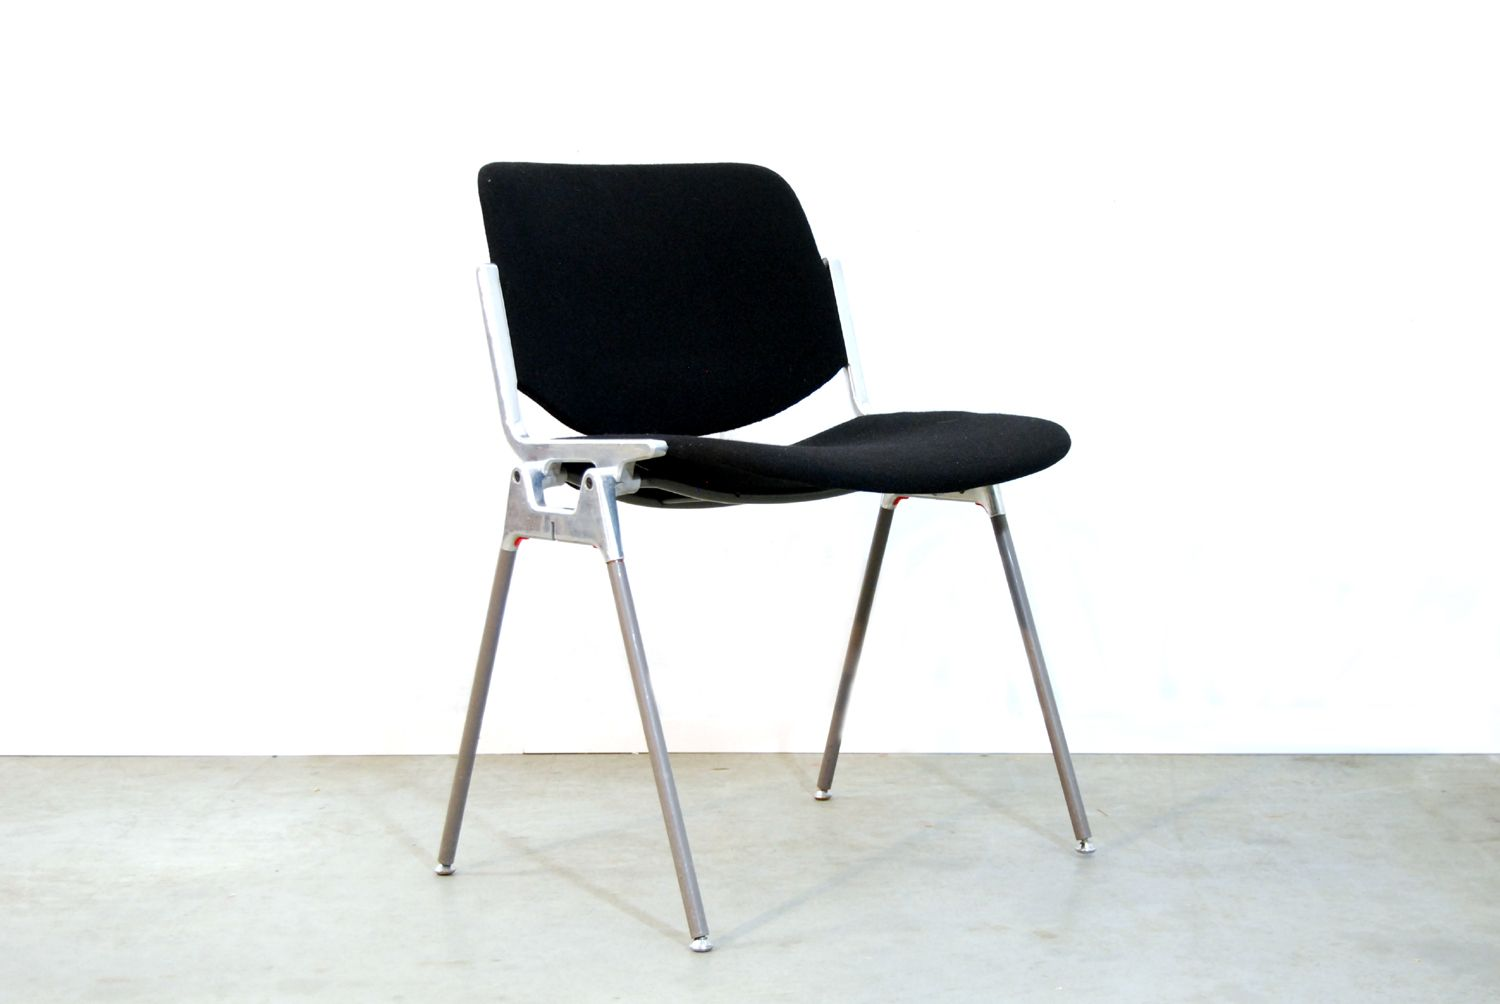 Italian dsc axis 106 dining chair by giancarlo piretti for for 1980s chair